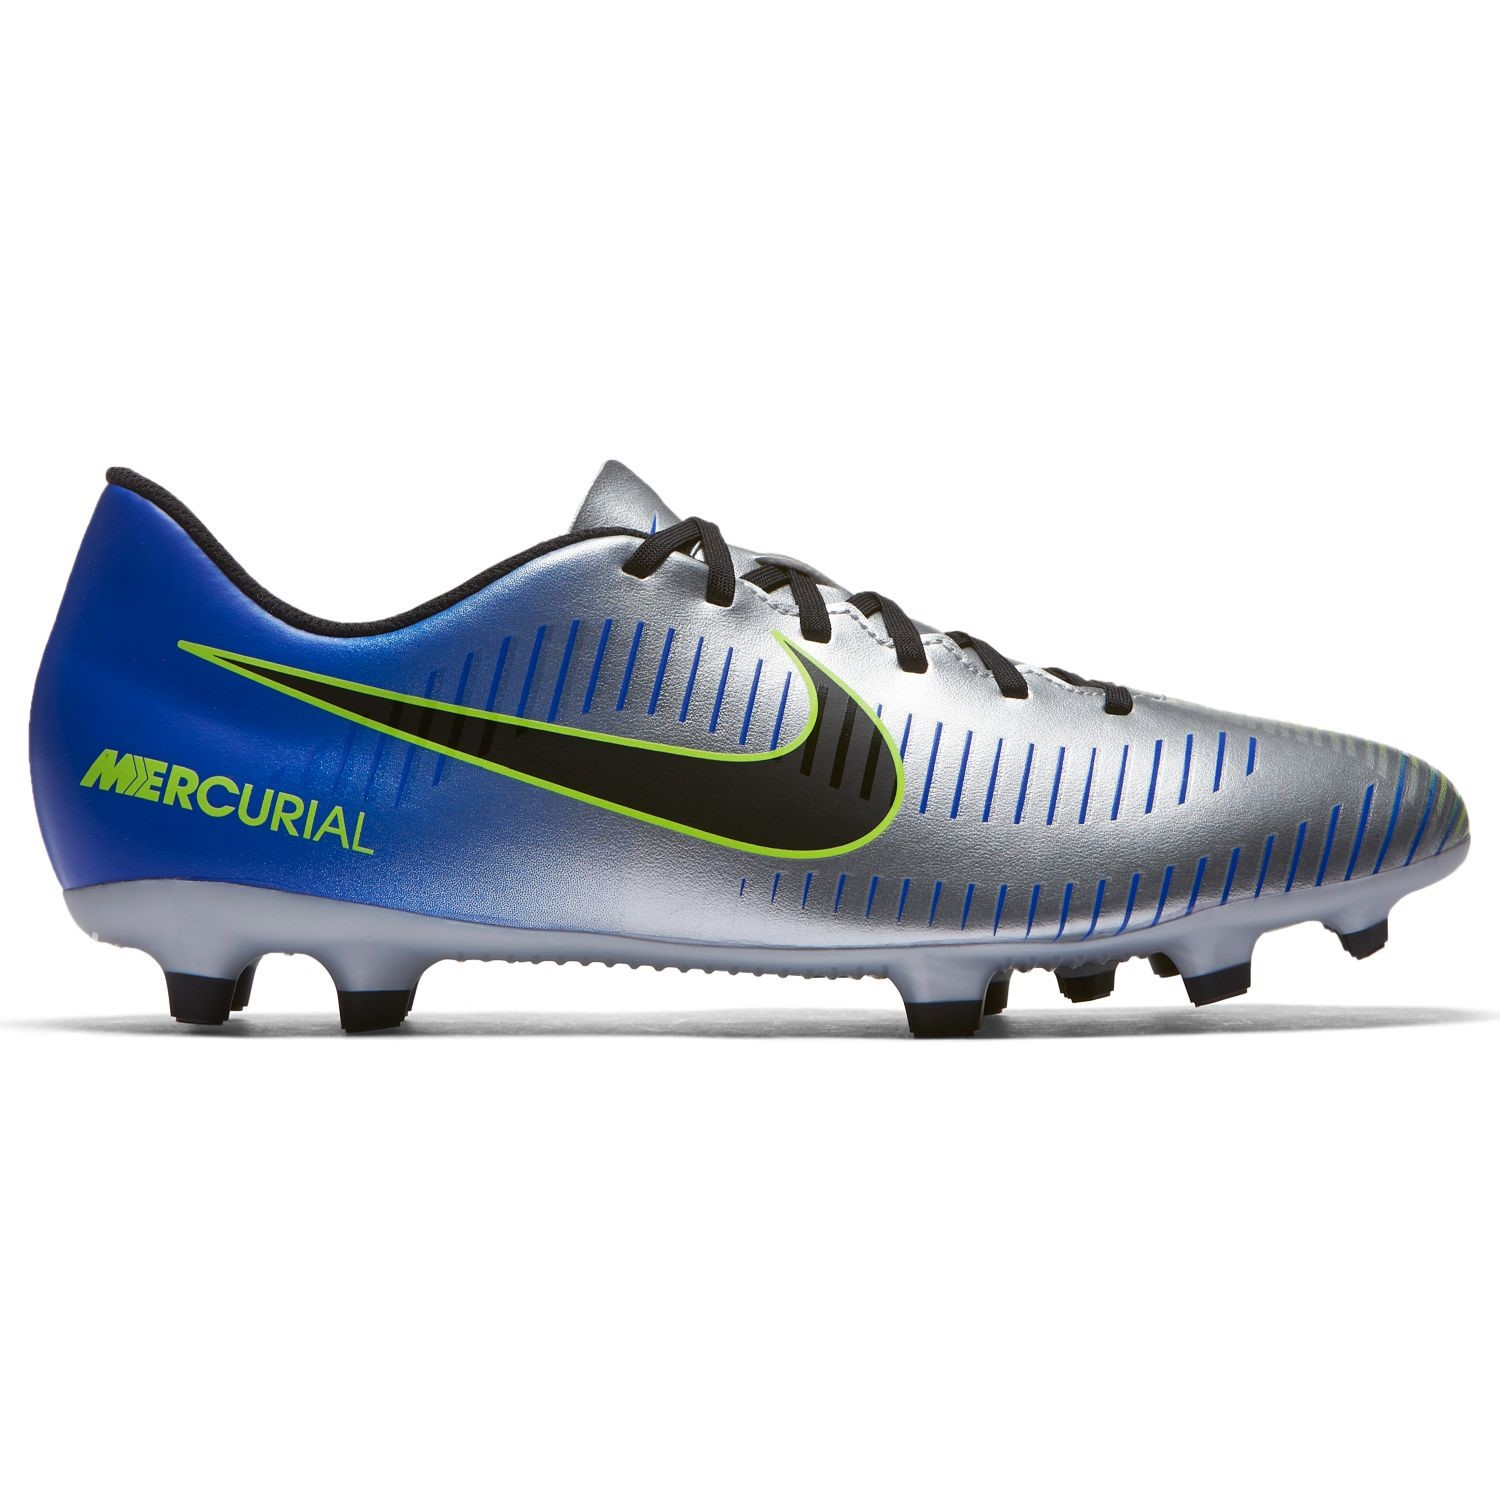 e9f39323290 Nike Mercurial Vortex III Neymar Jr FG - Mens Football Boots - Racer Blue  Black